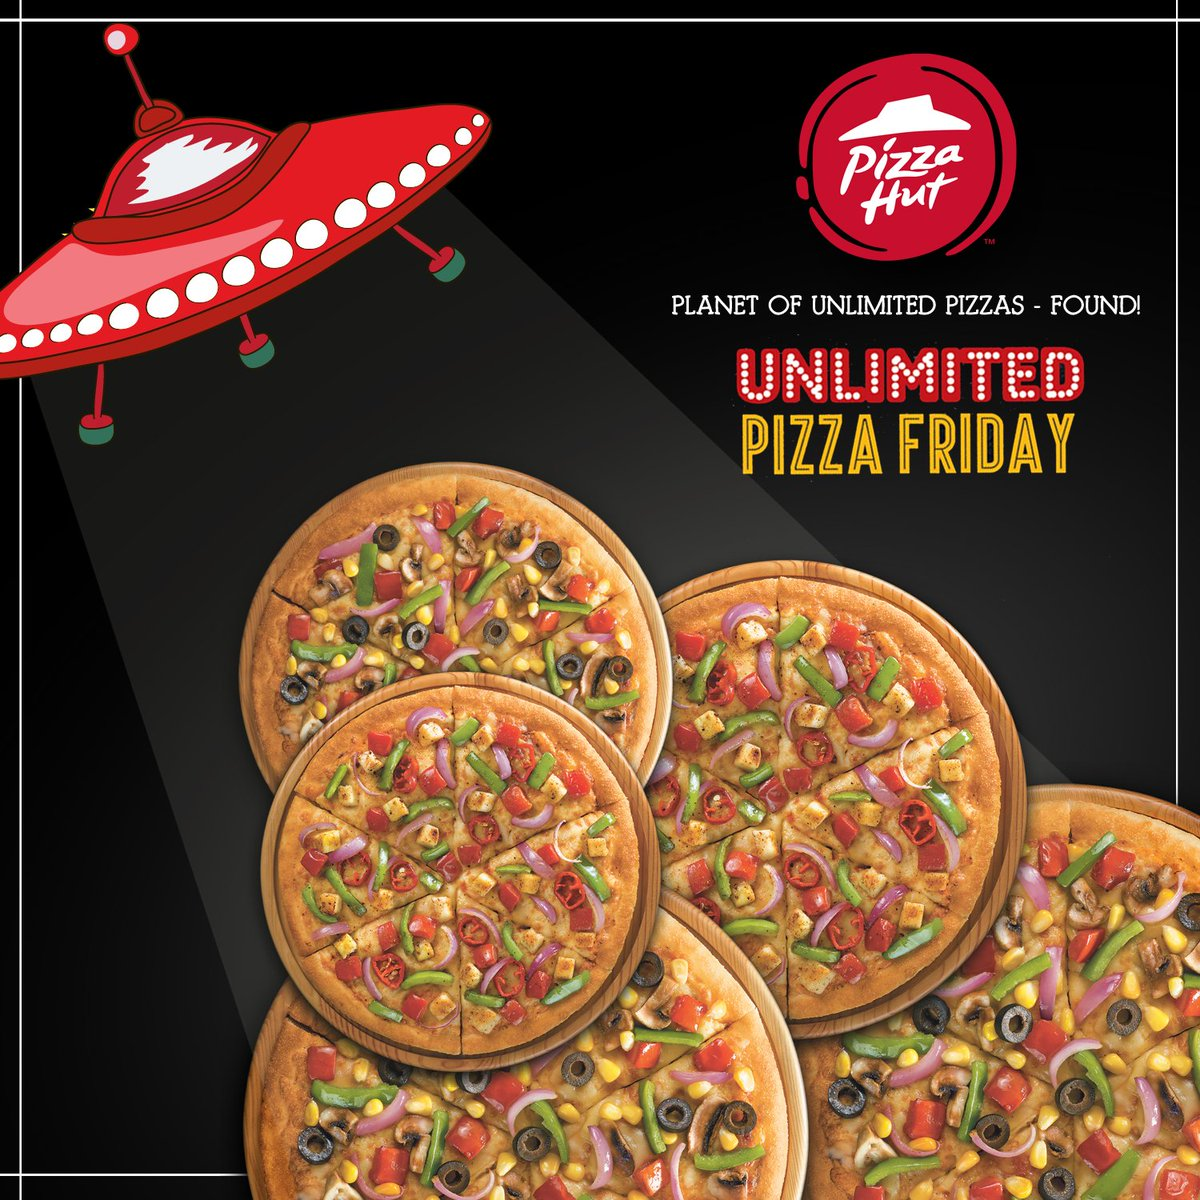 Come to our outlets on UnlimitedPizzaFriday and find a whole new universe of delicious pan pizzas https t.co E1wNGAr2Zb